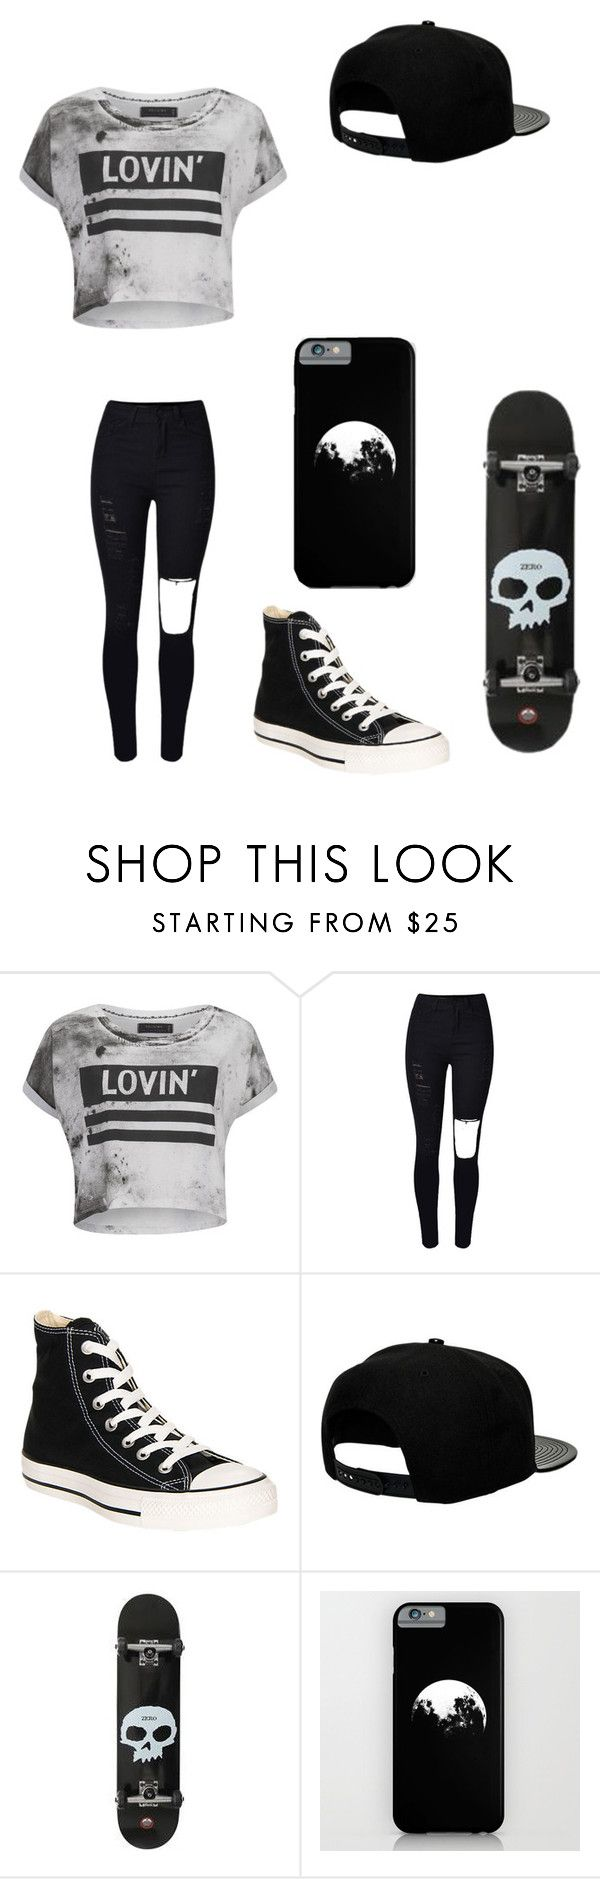 """Untitled #73"" by darksoul7 on Polyvore featuring Religion Clothing, Converse and '47 Brand"